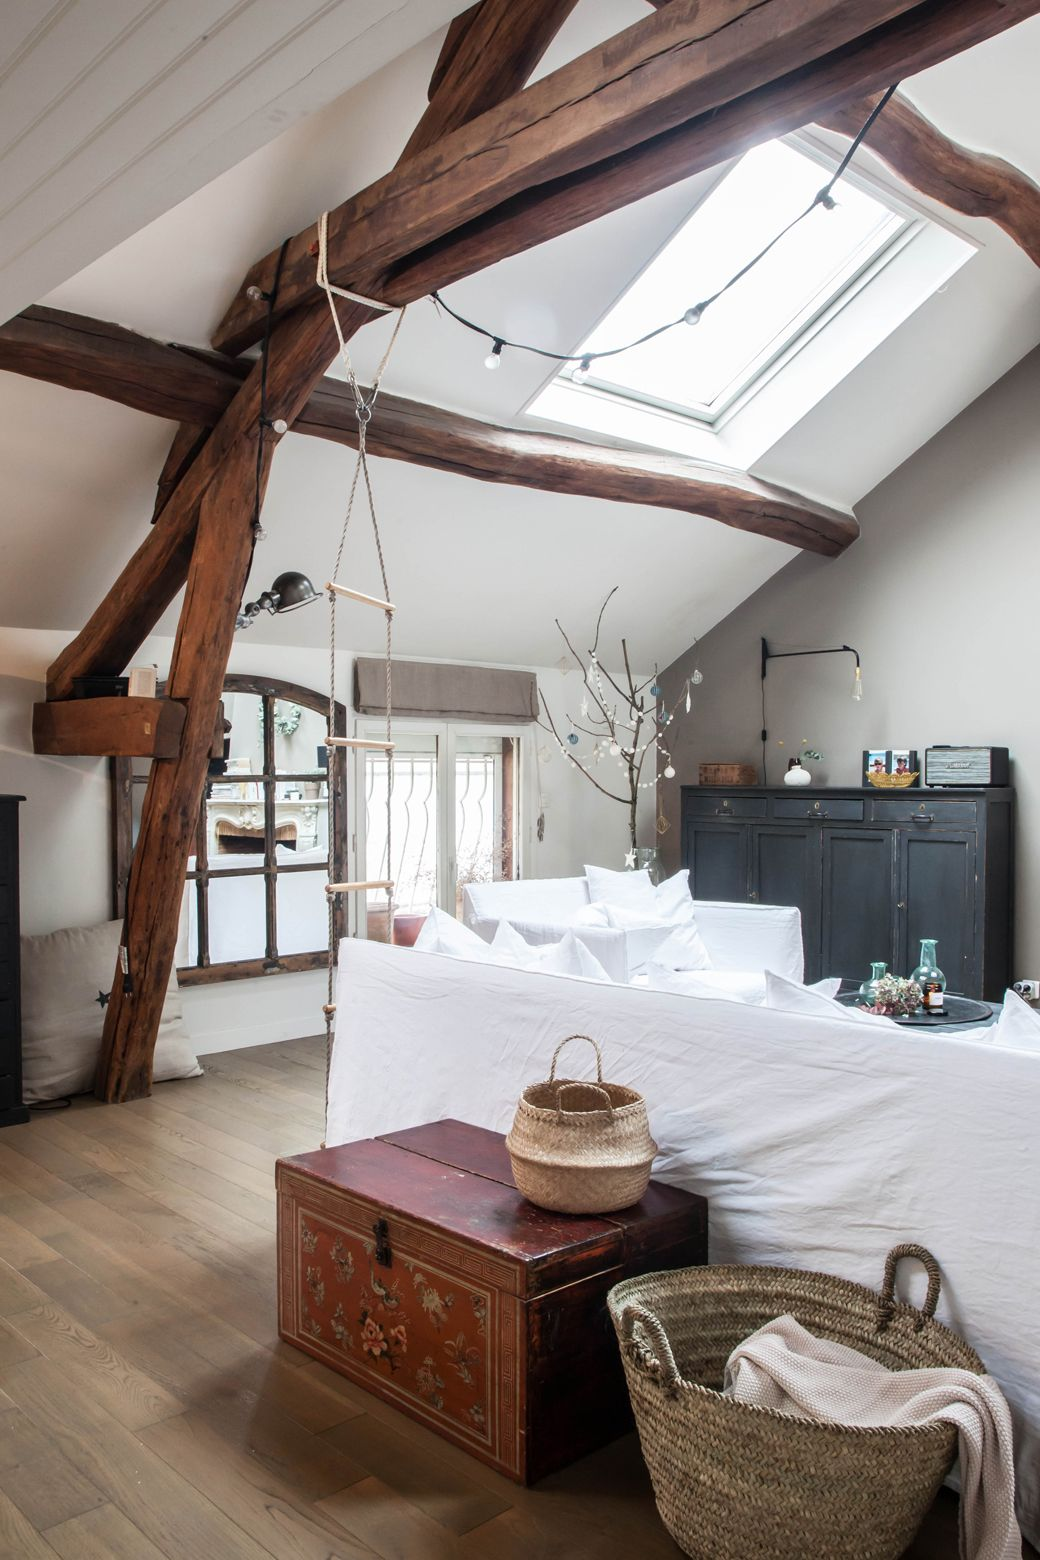 Homes with Heart: Harmony in a Rustic French Home